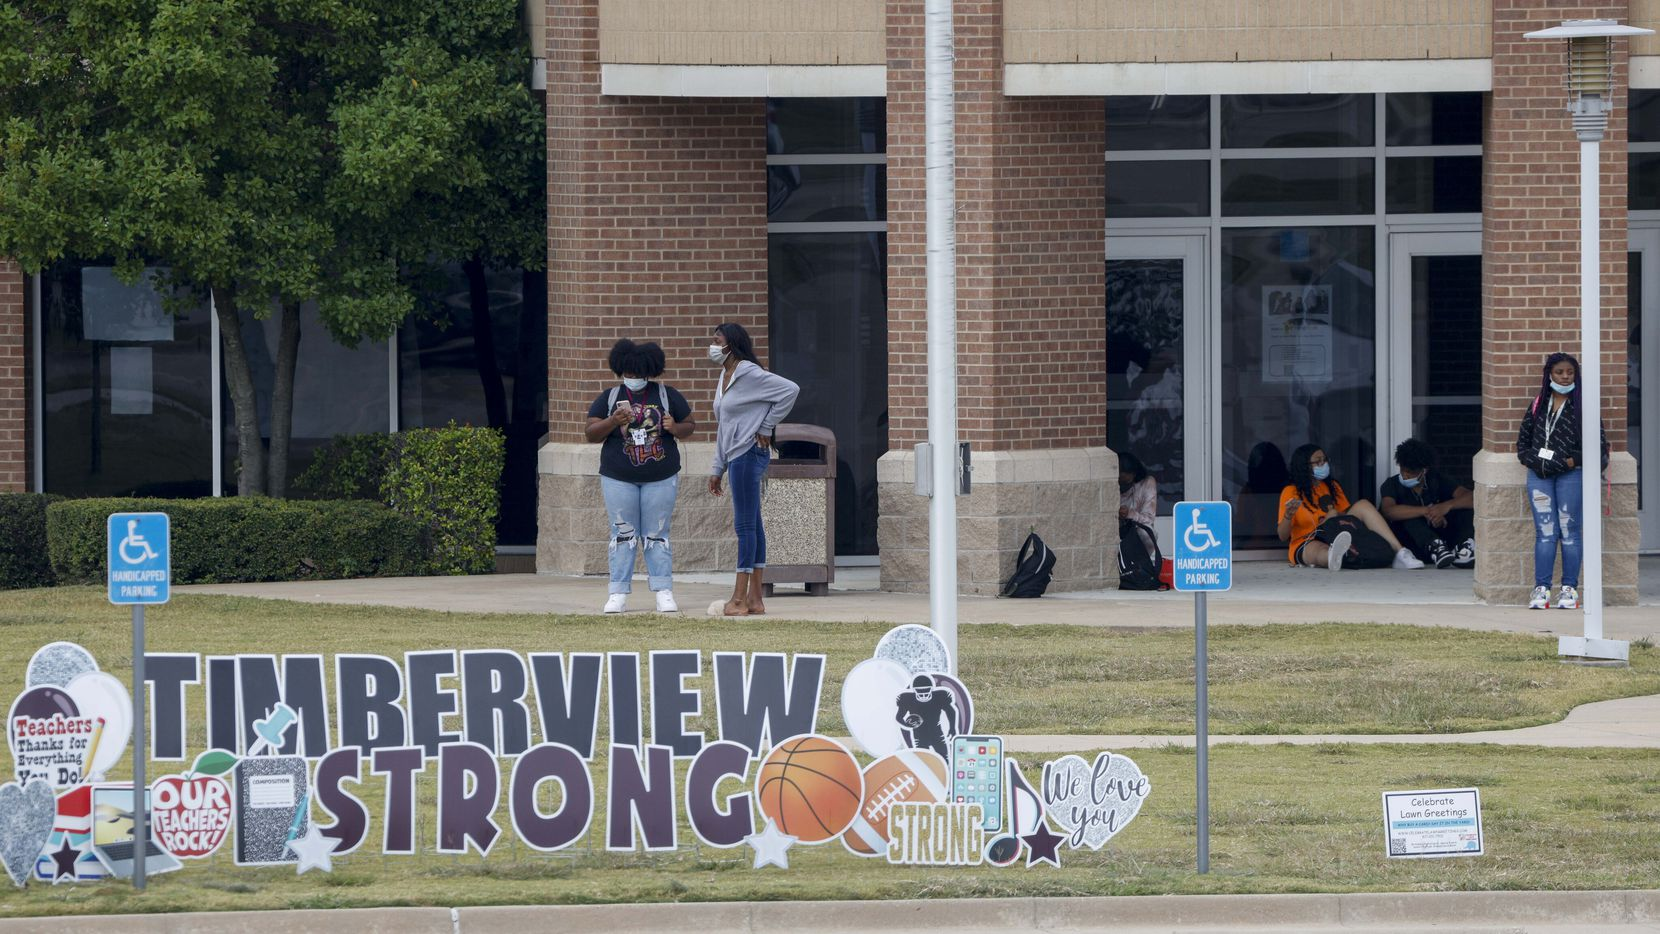 Students from Timberview High School leave campus after class Tuesday in Arlington. Students returned to classes on Tuesday after a shooting on Oct. 6 left four people injured.